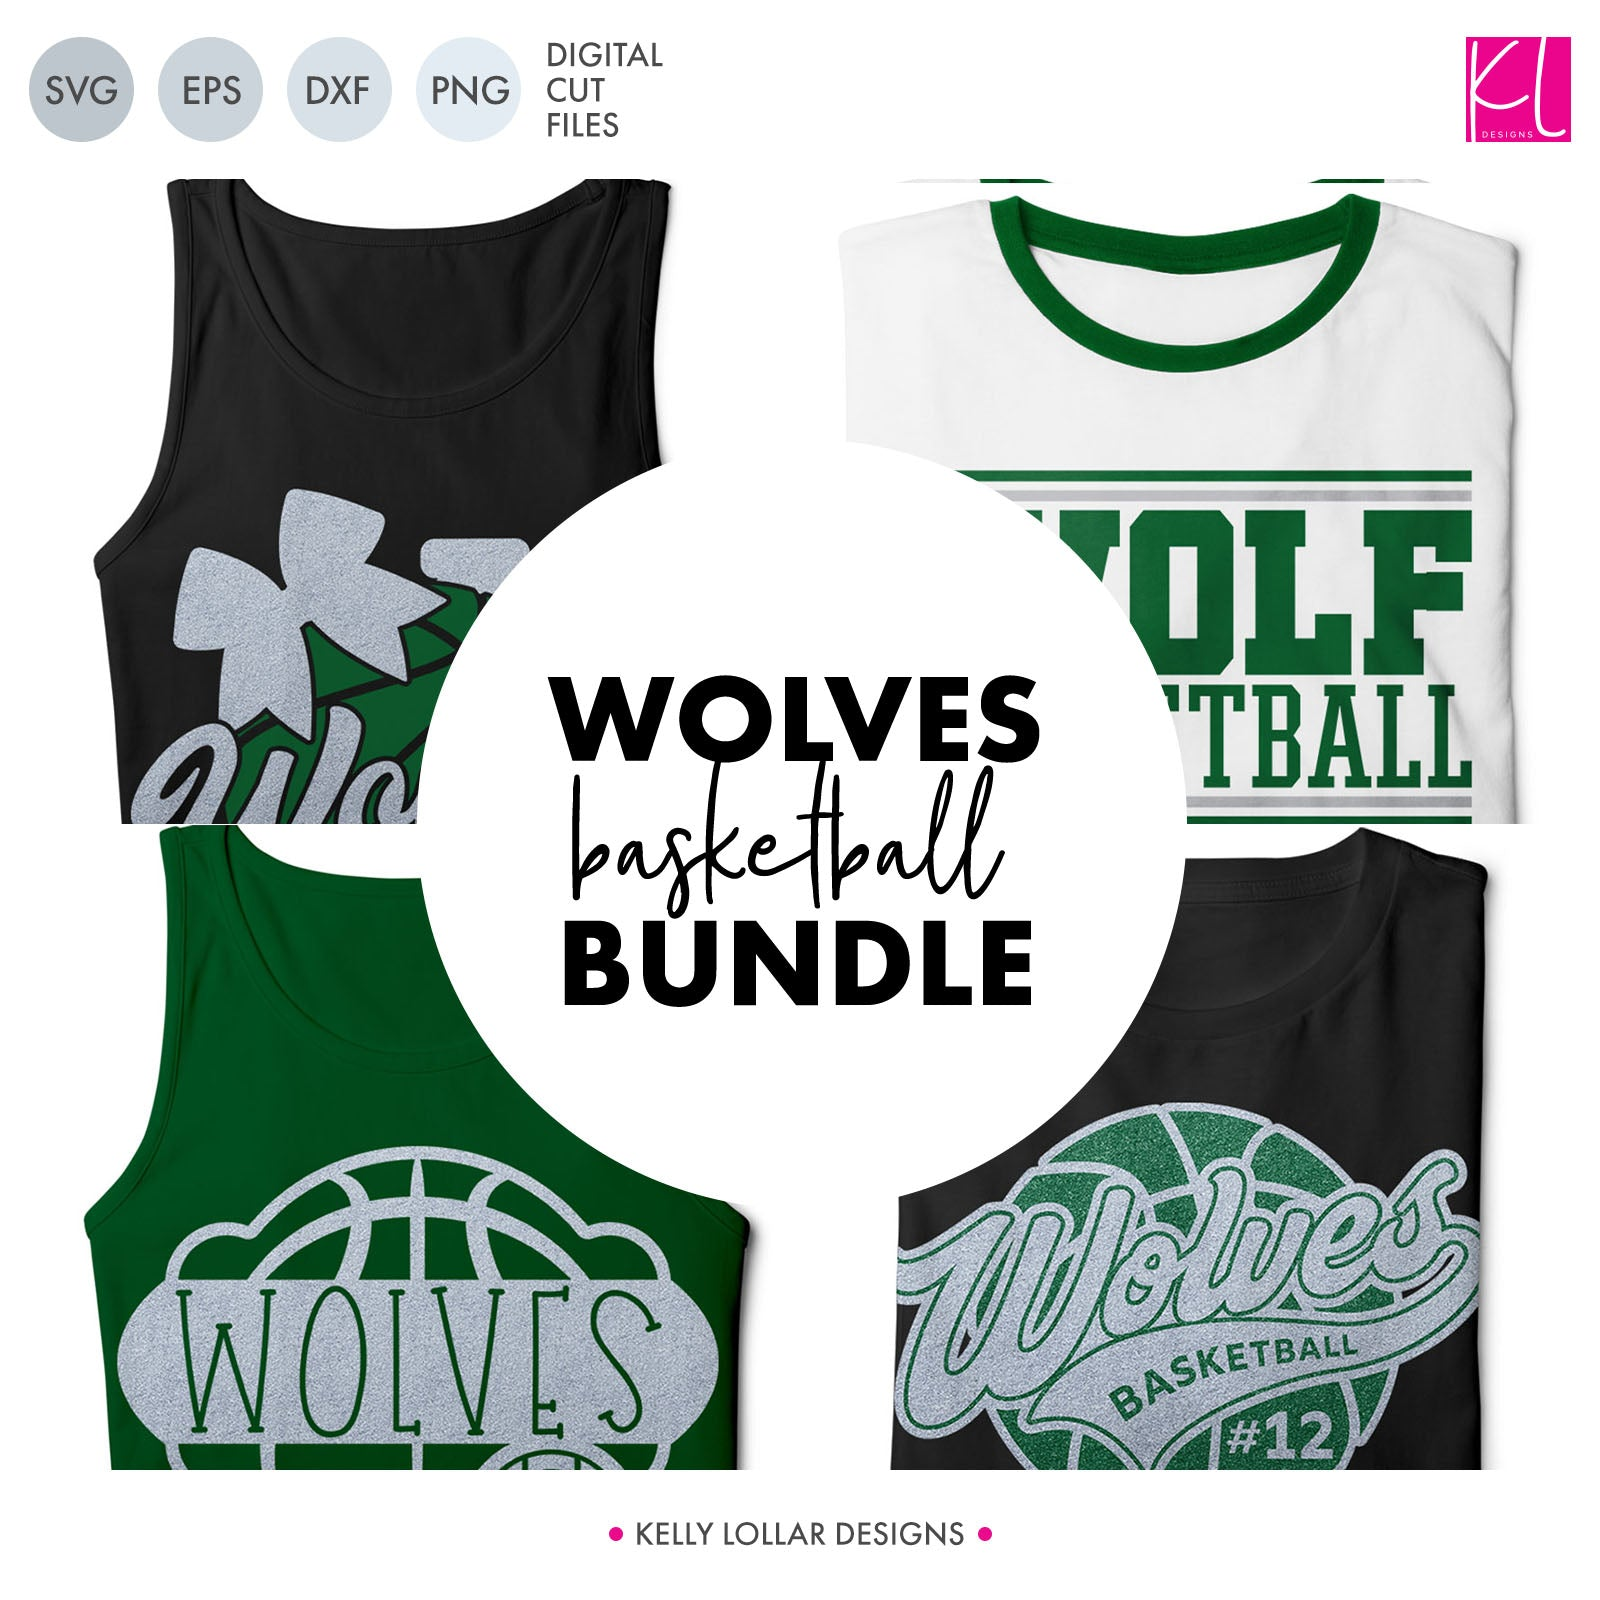 Wolves Basketball Bundle | SVG DXF EPS PNG Cut Files It's basketball season, so you Wolf Basketball crafter know what that means ... new spirit shirts! This fourteen-piece bundle includes a little something for everyone - from girly and cute